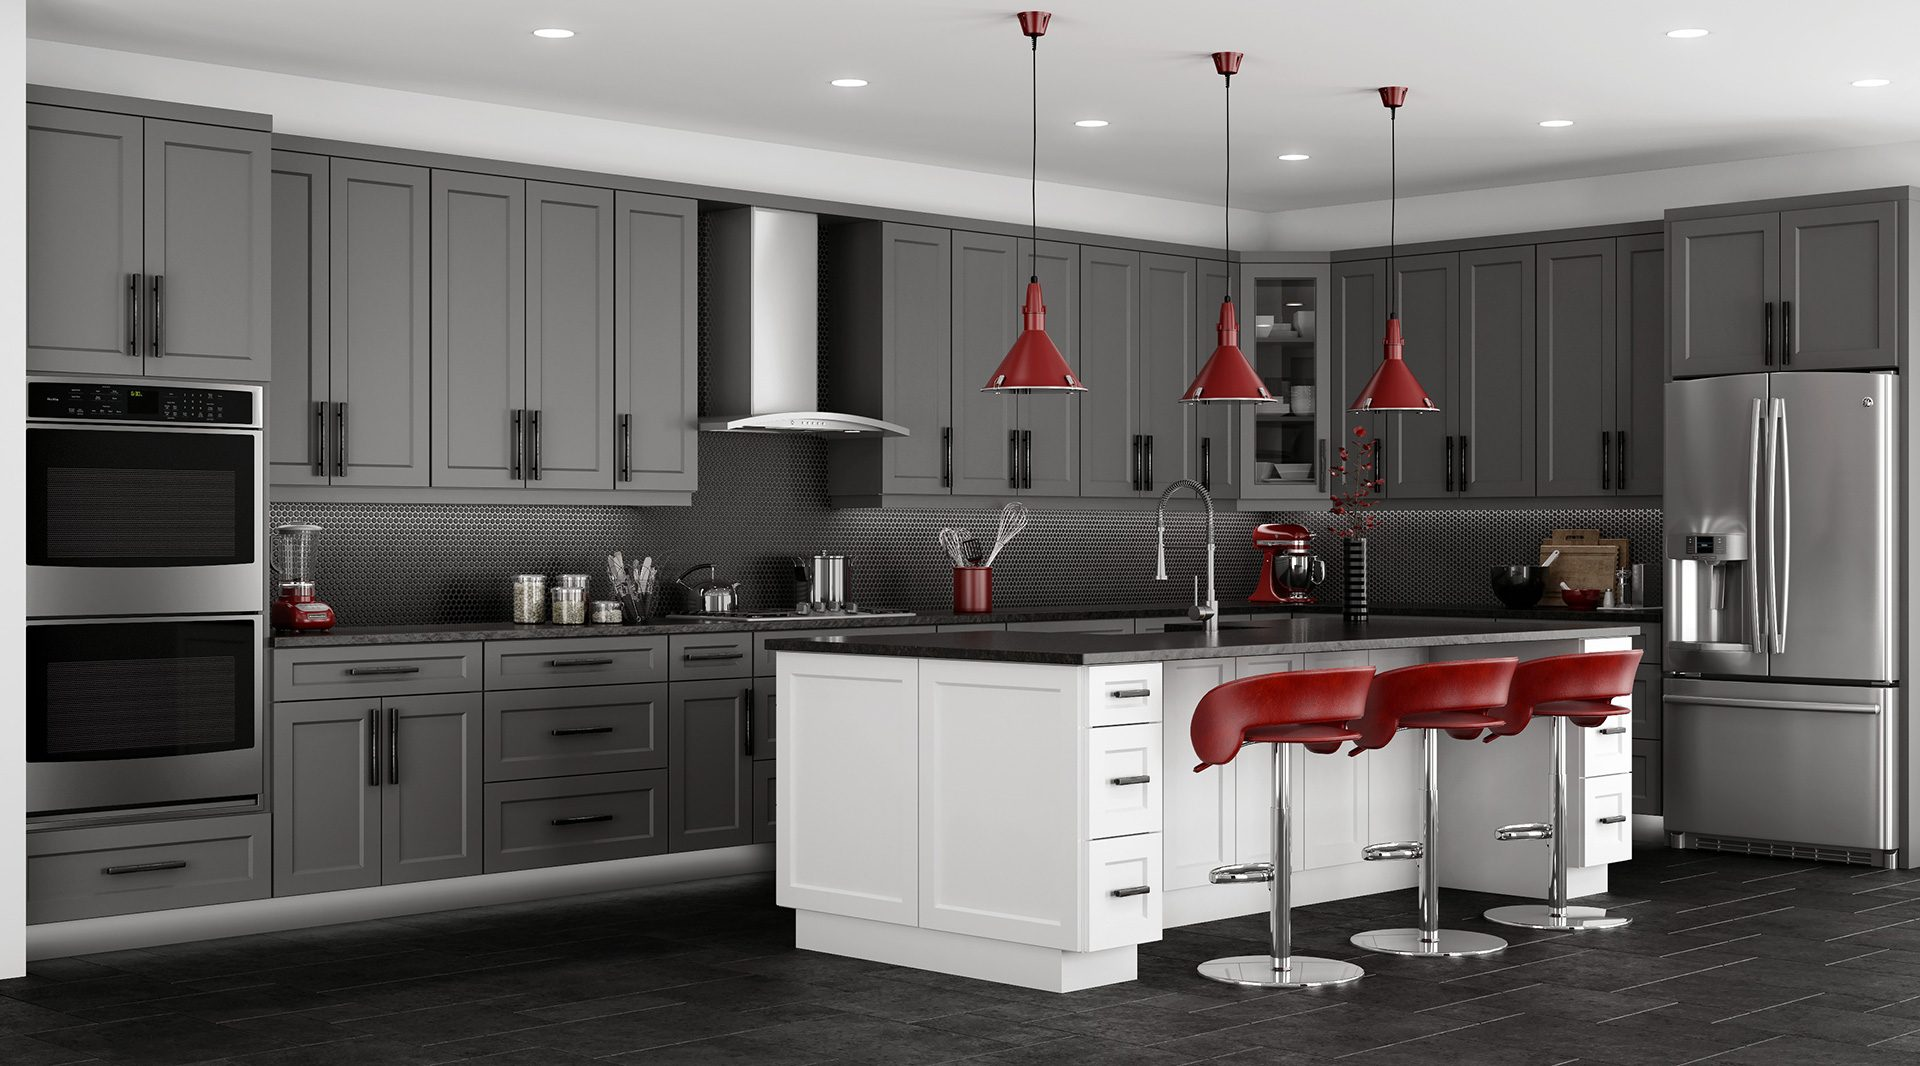 Gray Shaker-style Kitchen Cabinets